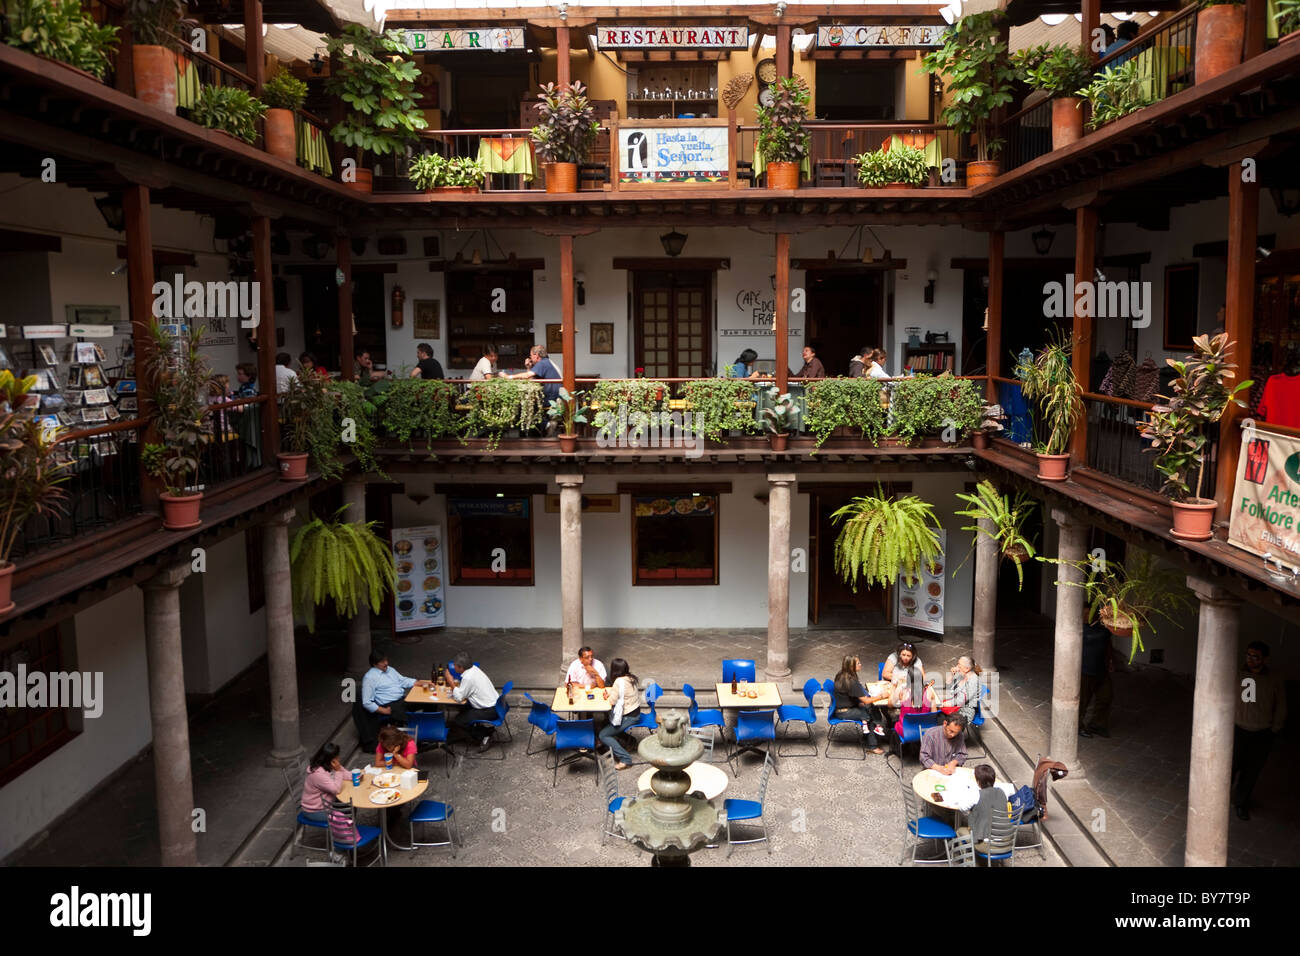 Ecuador Quito Palacio Arzobispal, Overhead view of small cafe tables inside shopping courtyard in Old Town - Stock Image